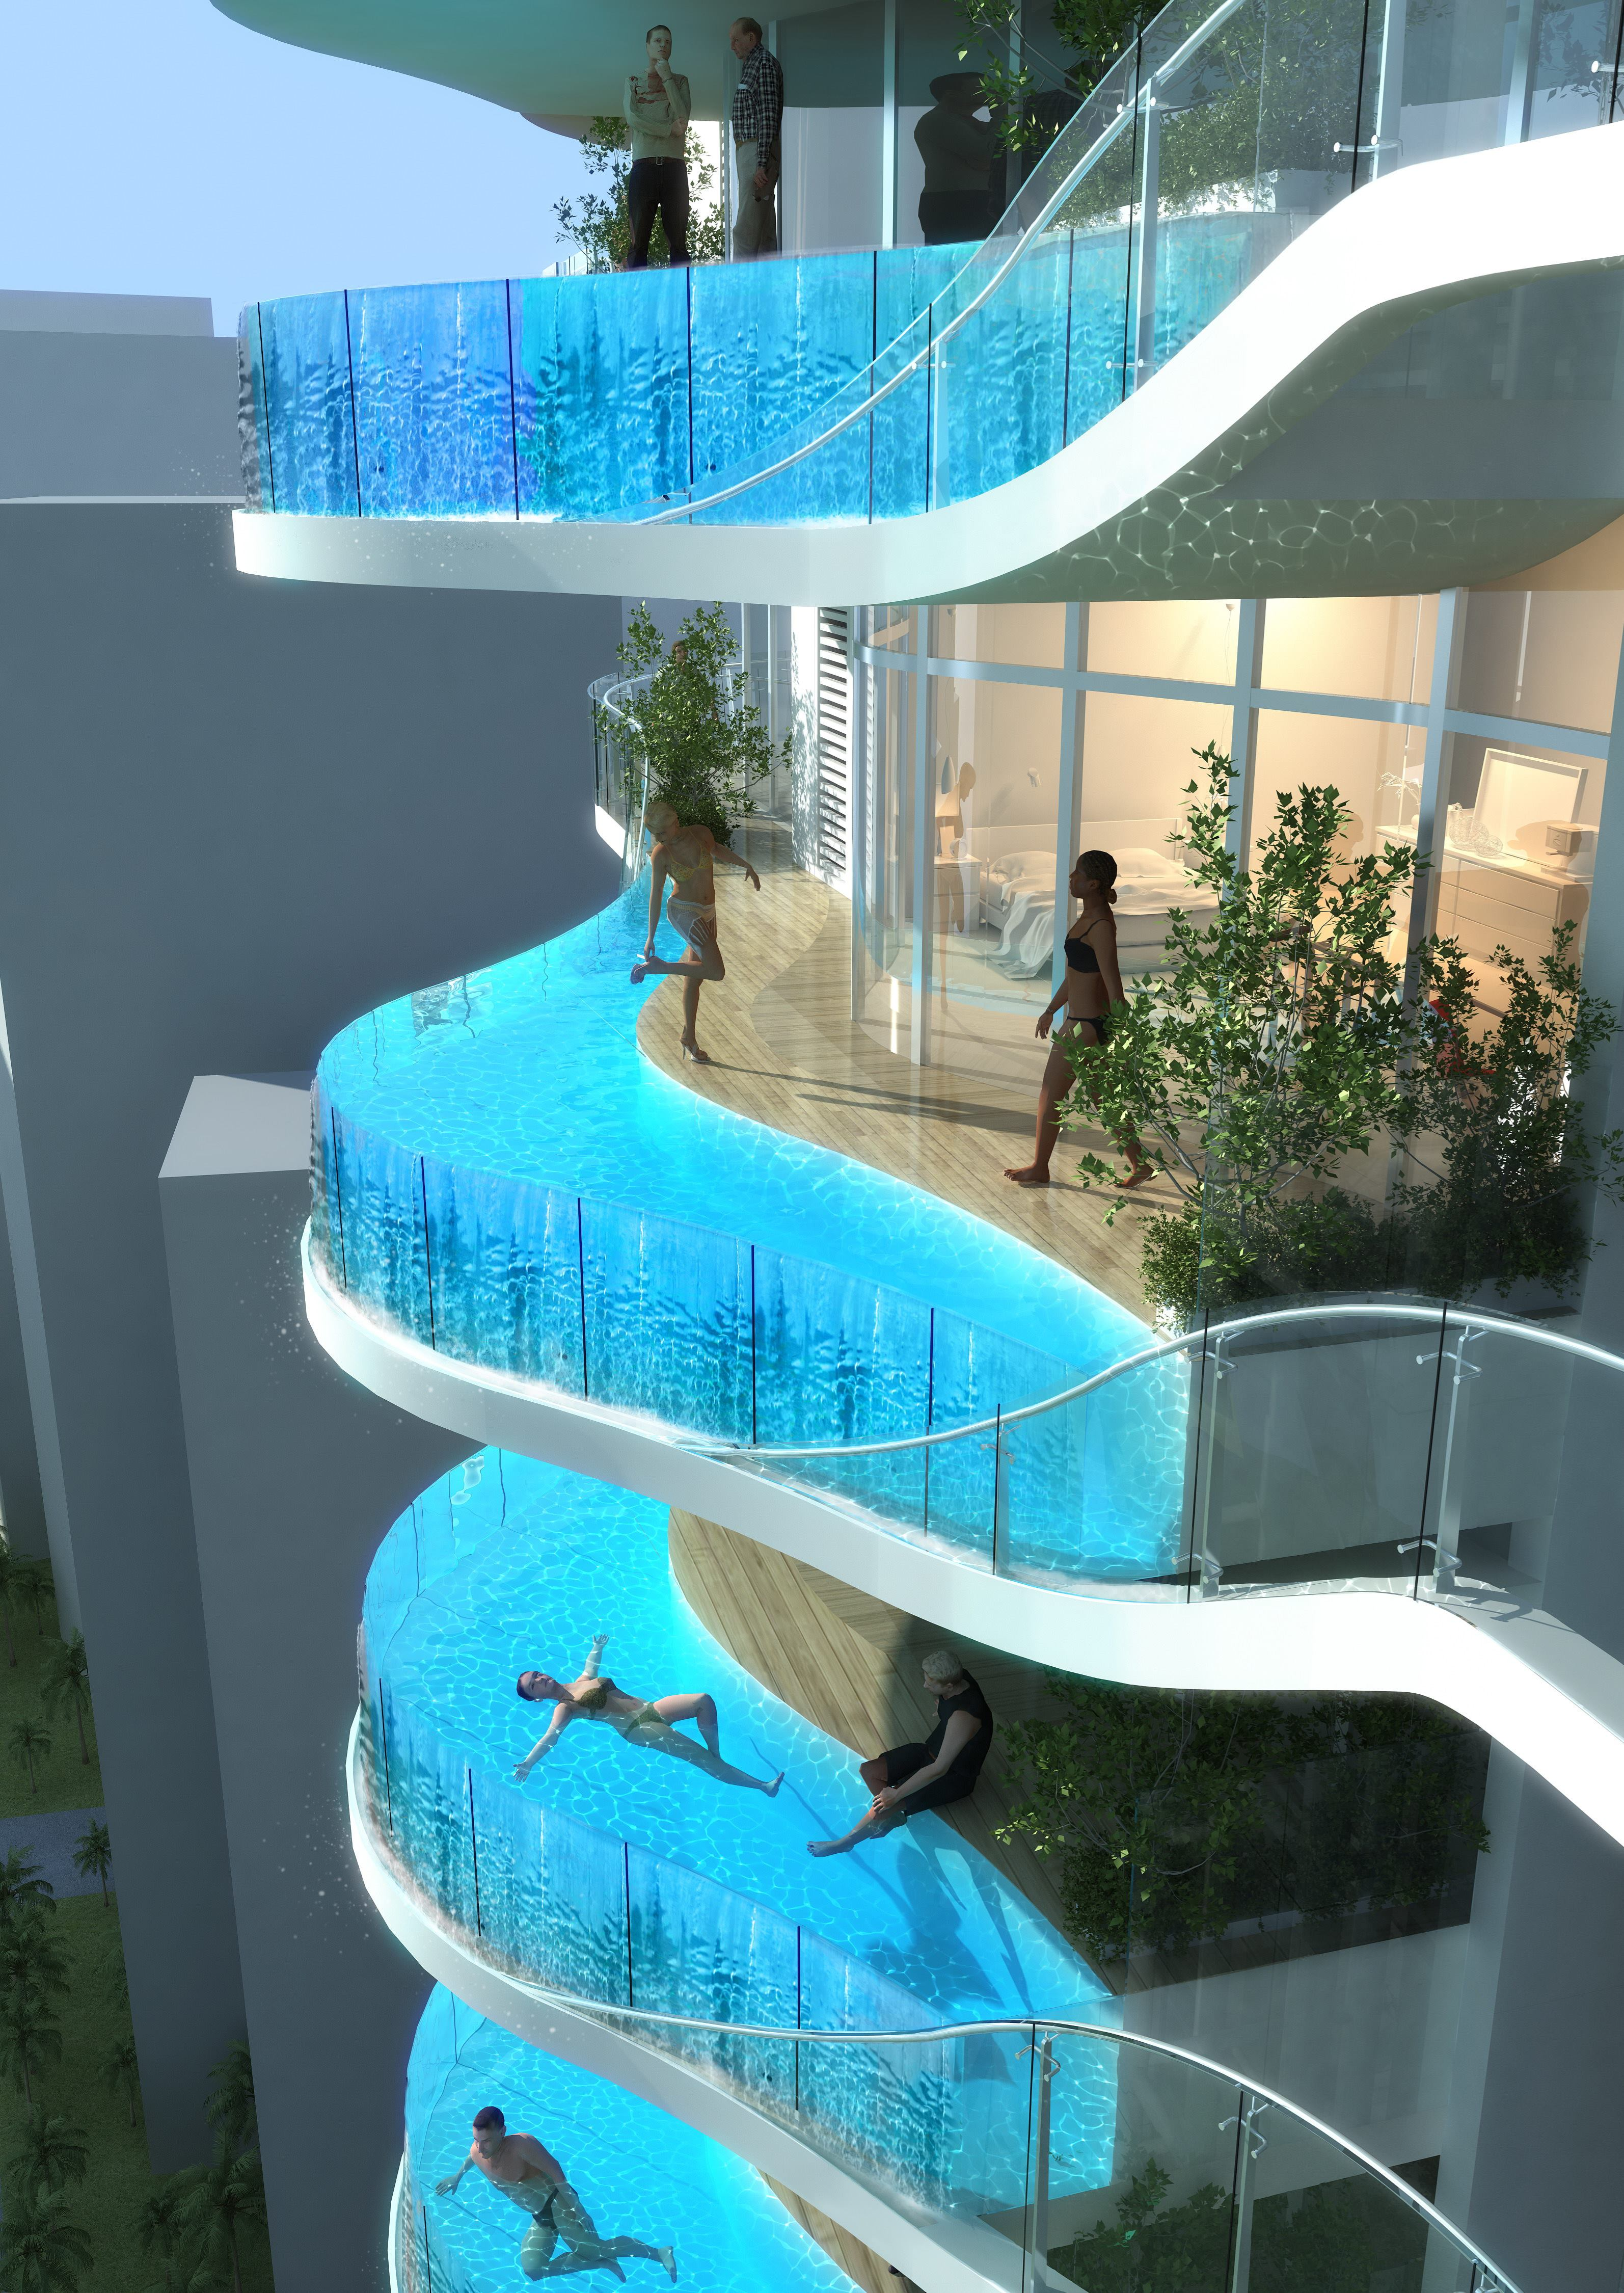 Devel Zwembad Hong Kong Architects Create Pool In The Sky Multifamily